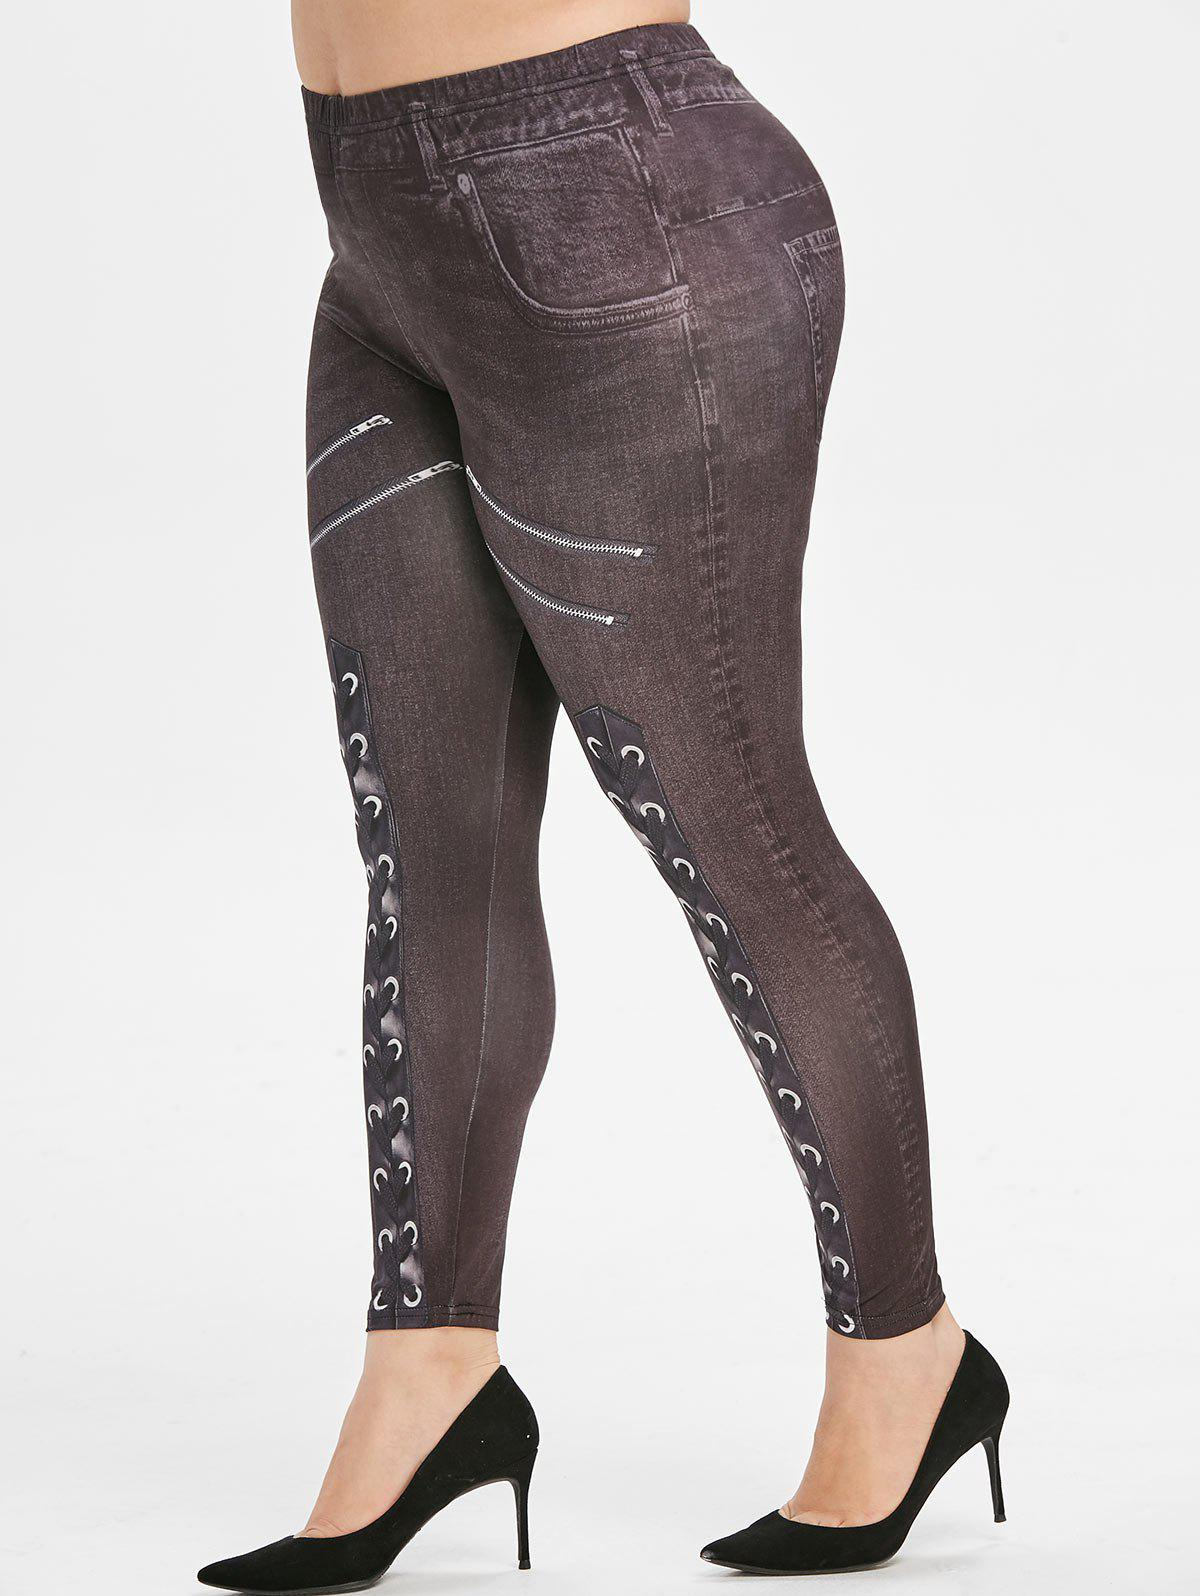 Plus Size 3D Lace-up Zip Print High Waisted Jeggings фото